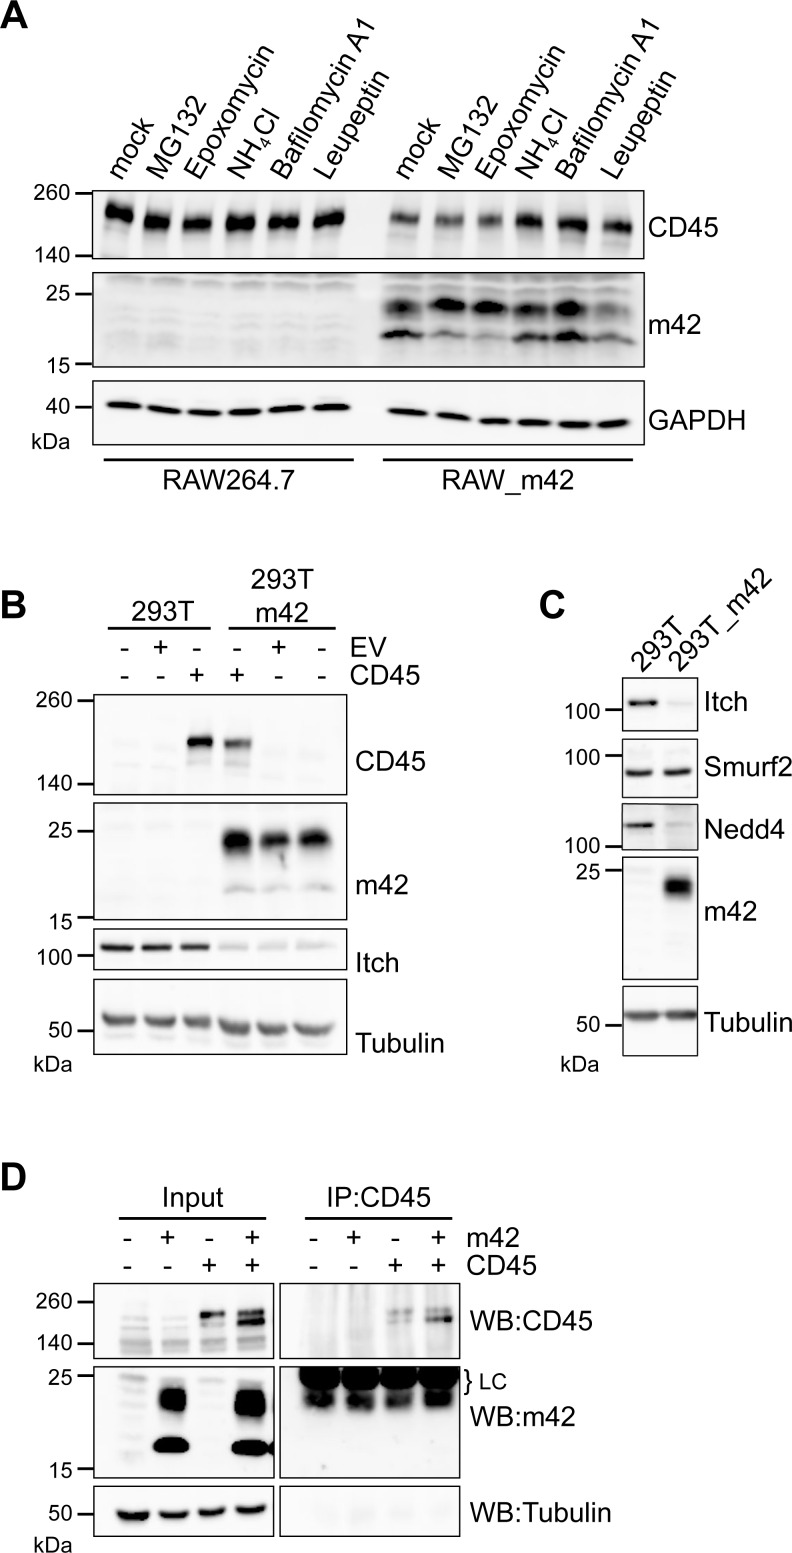 Inhibition of CD45 downregulation in m42-expressing cells by lysosomal inhibitors and interference of m42 with Nedd4-like E3 ubiquitin ligases. (A) RAW264.7 or RAW_m42 were left untreated or were treated with proteasome inhibitors (MG132, Epoxomycin) or lysosome inhibitors (NH 4 Cl, Bafilomycin A1, Leupeptin) for 4 h, followed by immunoblot analysis of CD45 and m42 expression. GAPDH served as loading control. (B, C) HEK 293T cells or a HEK 293T-based cell line stably expressing m42 were either mock transfected or transfected with an empty vector (EV) or a vector encoding murine CD45RB. 48 h post transfection cell lysates were analyzed by immunoblotting for CD45, m42, Itch, Smurf2 and Nedd4 protein expression. α-tubulin served as loading control. (D) HEK 293T cells were transfected with expression vectors for m42 or CD45RB or both vectors and 48 h later cell lysates were subjected to immunoprecipitation with a CD45 antibody. Proteins in lysates and precipitates were detected by immunoblotting using the indicated specific antibodies. LC indicates the signals of the antibody light chain.